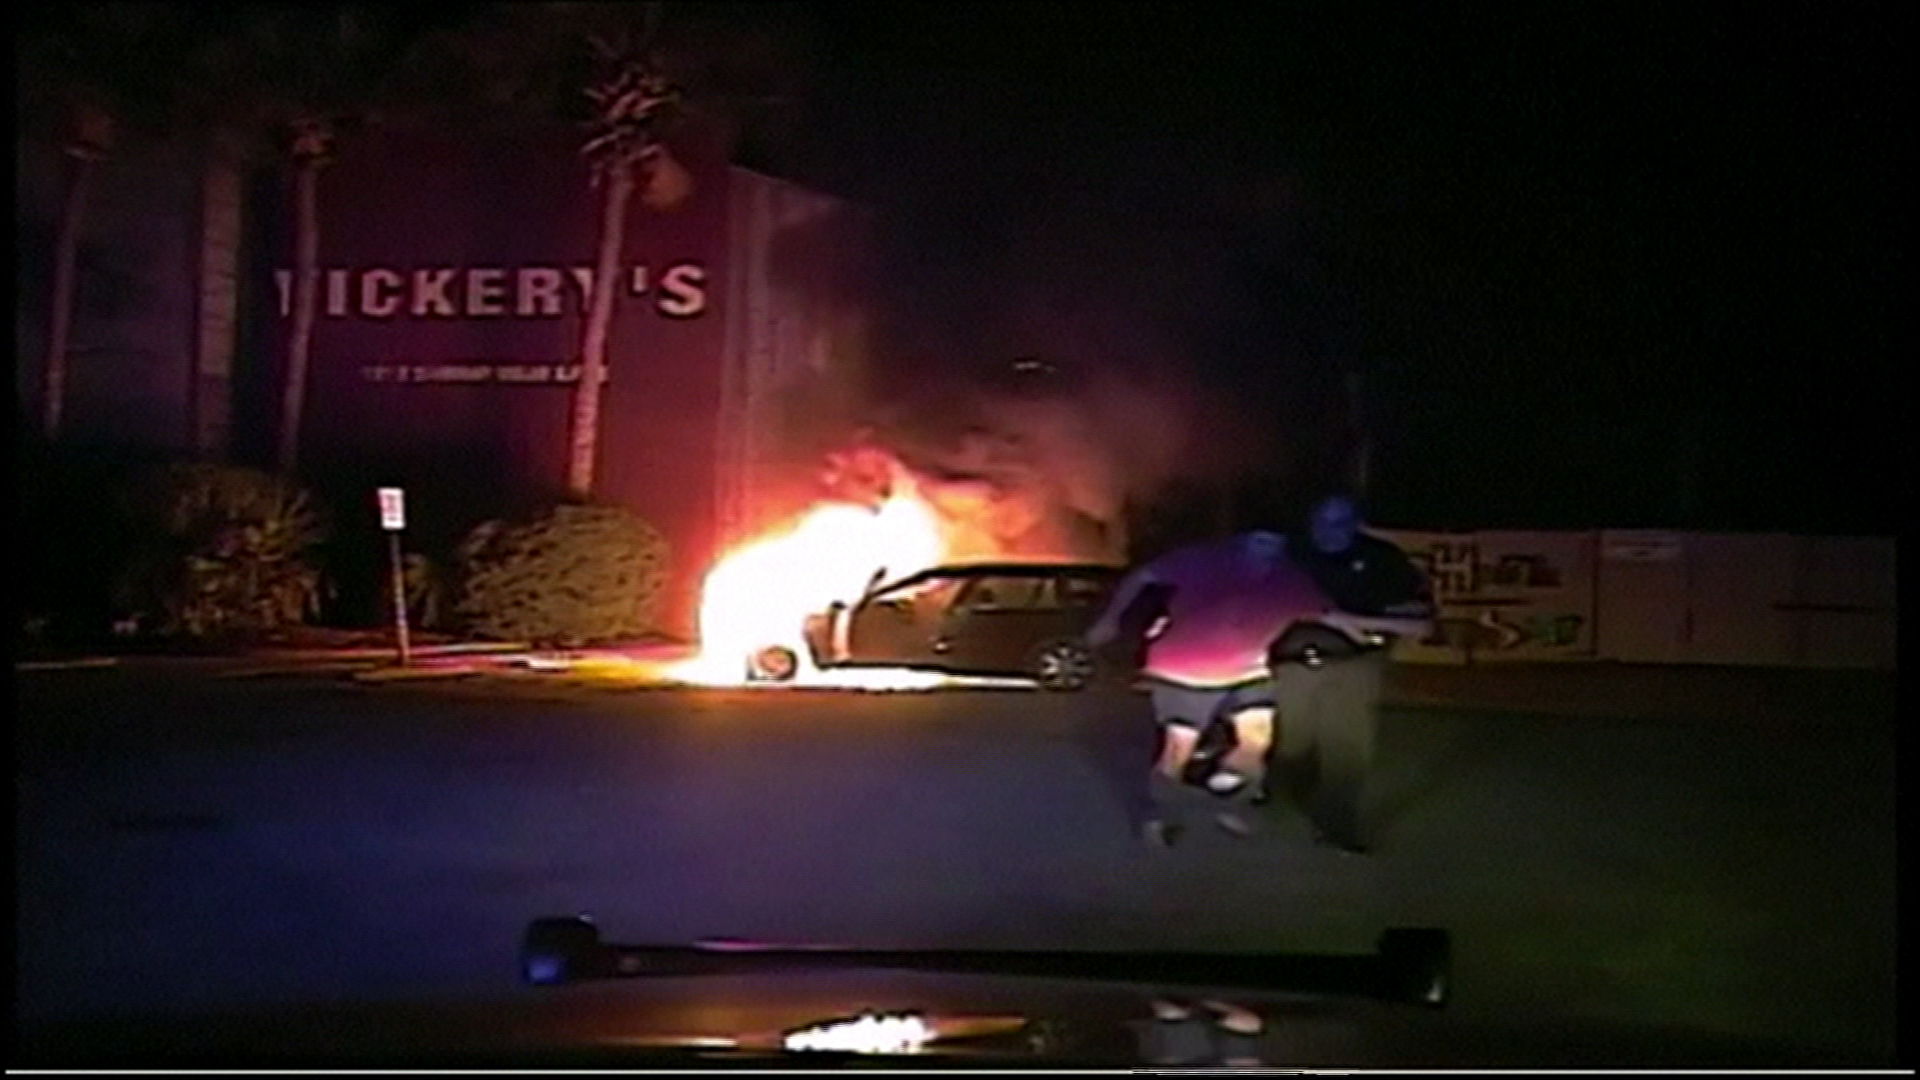 Police officer saves man from burning car